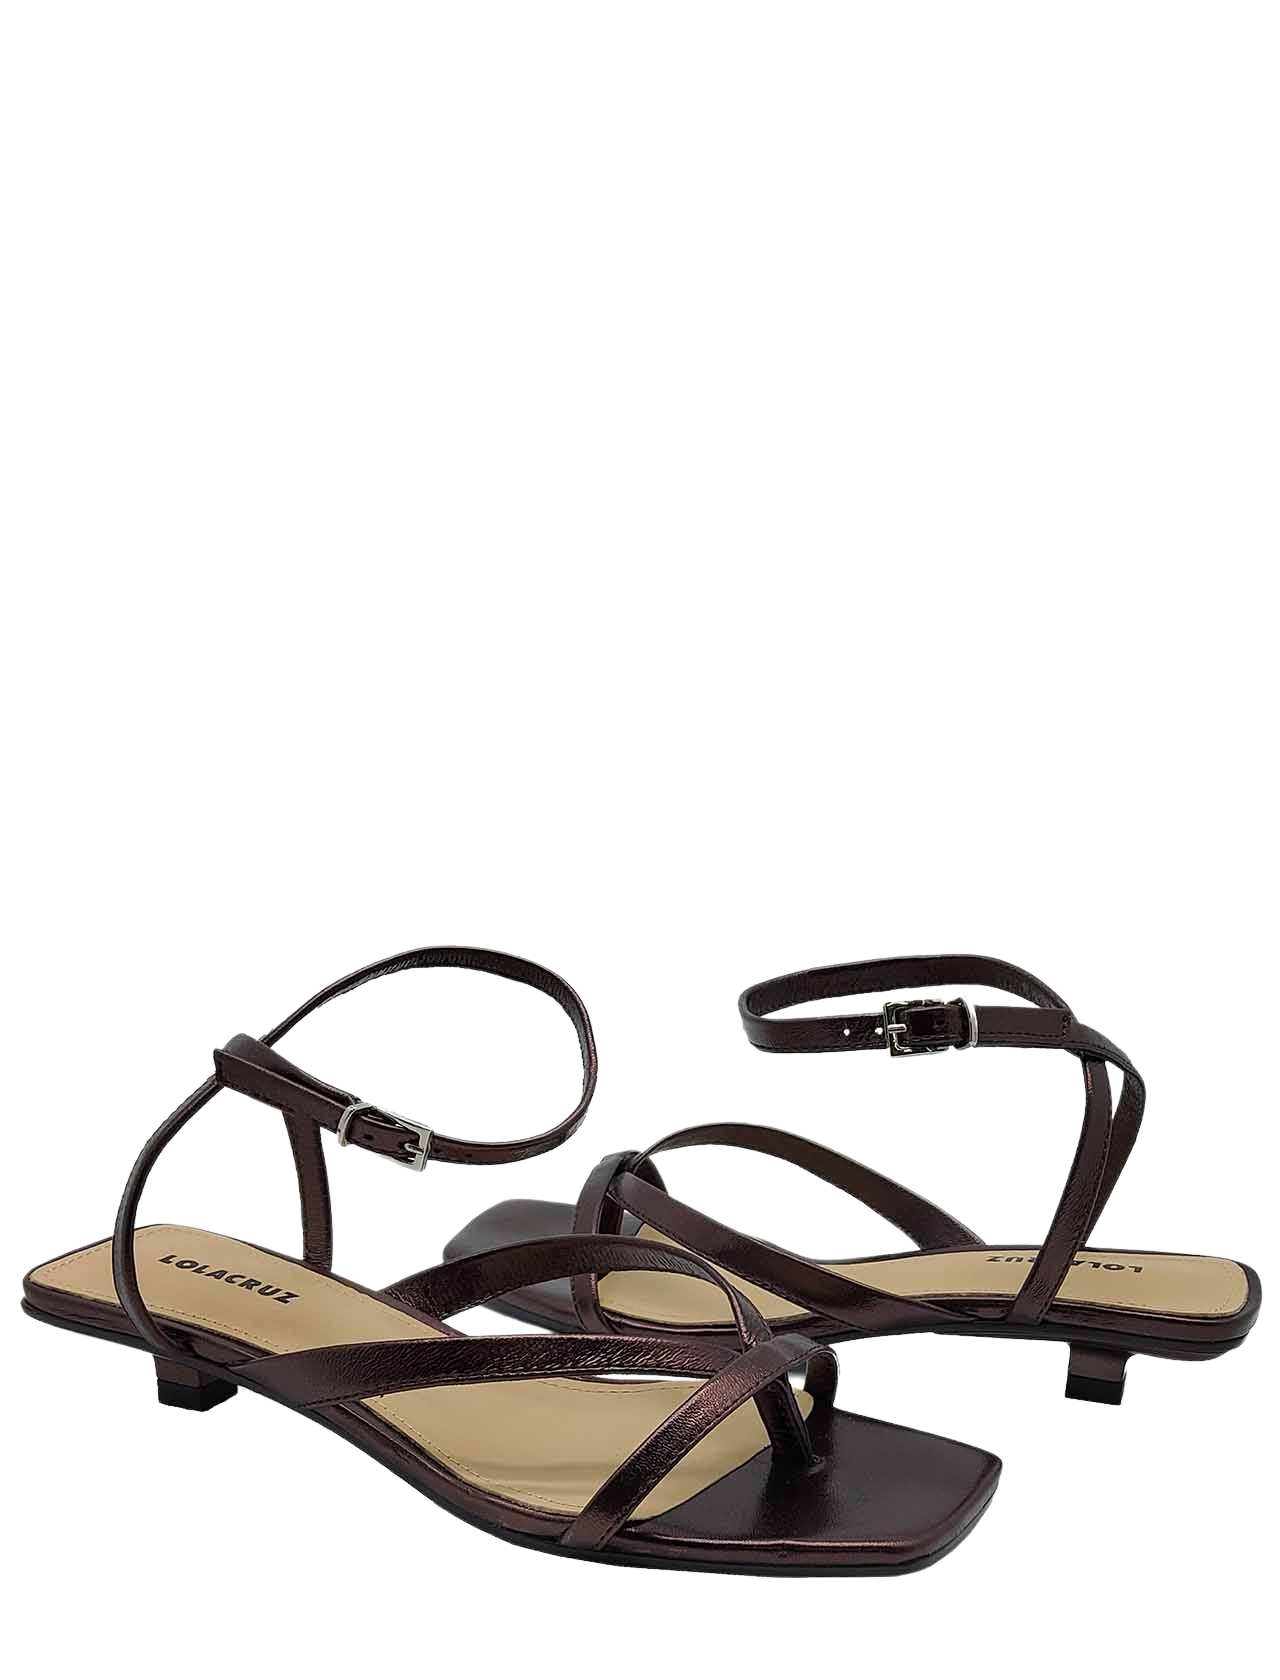 Women's Shoes Thong Sandal in Dark Brown Leather with Strap and Square Toe Lola Cruz   Sandals   078Z23BK012